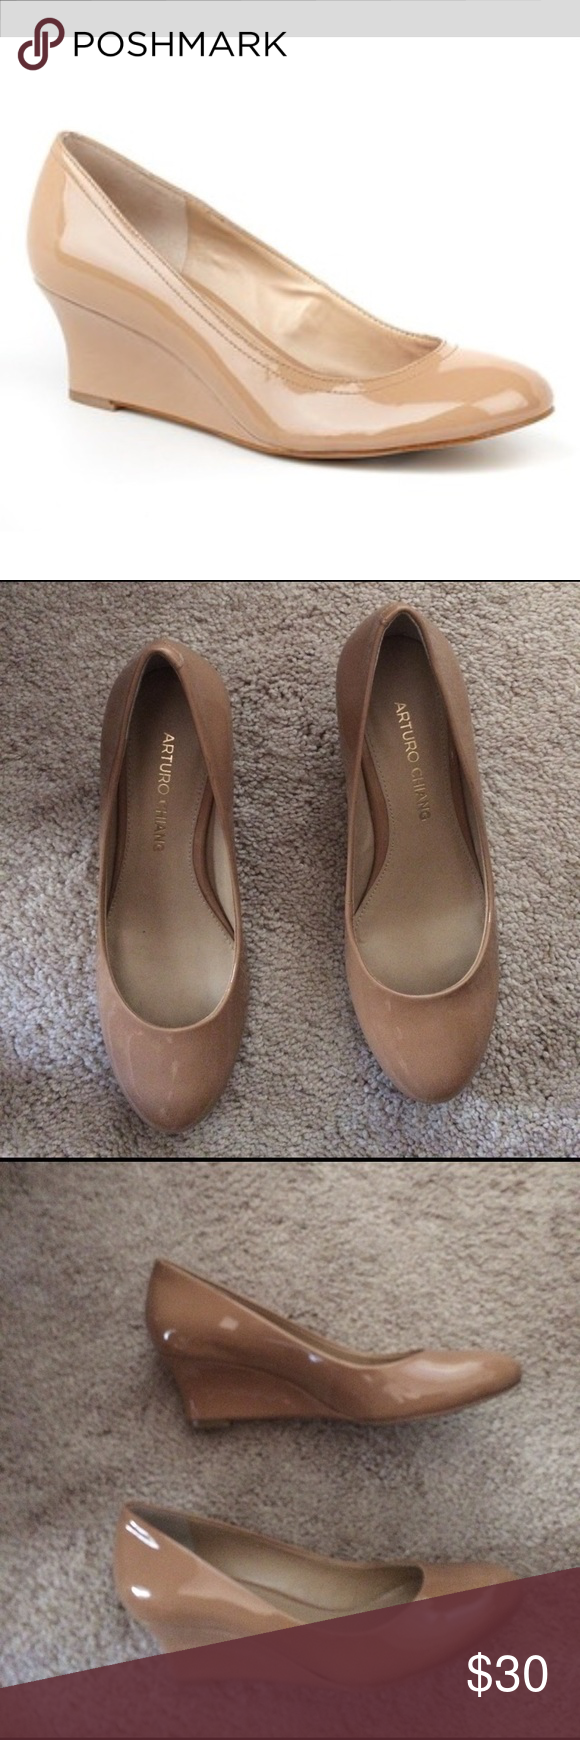 d6fa710e0b89 Classy Tan Wedges Arturo Chaing Arora Tan Patent Leather Wedges. Better  than very good used condition. Arturo Chiang Shoes Wedges